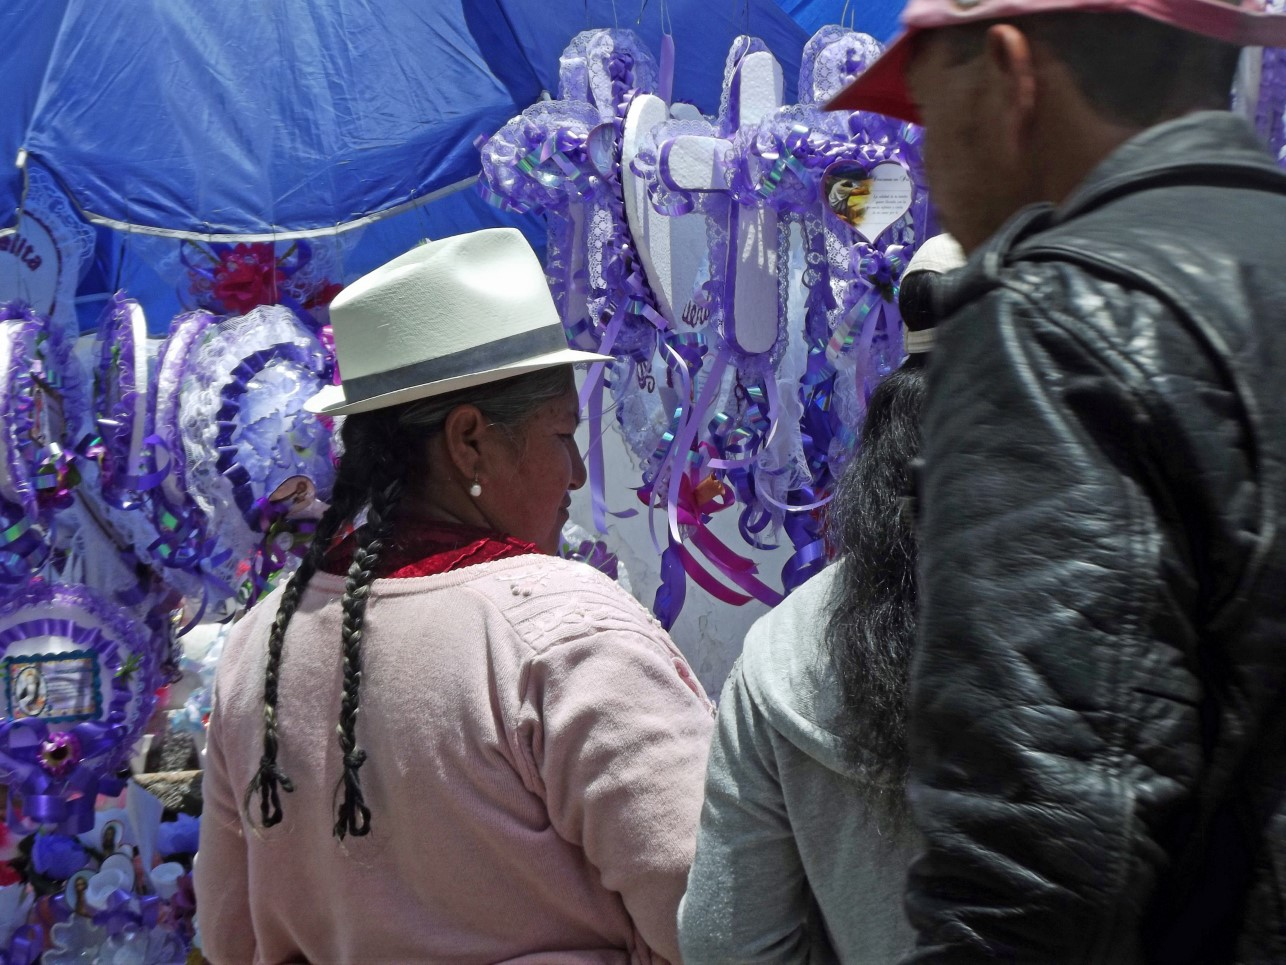 People at stall selling decorations